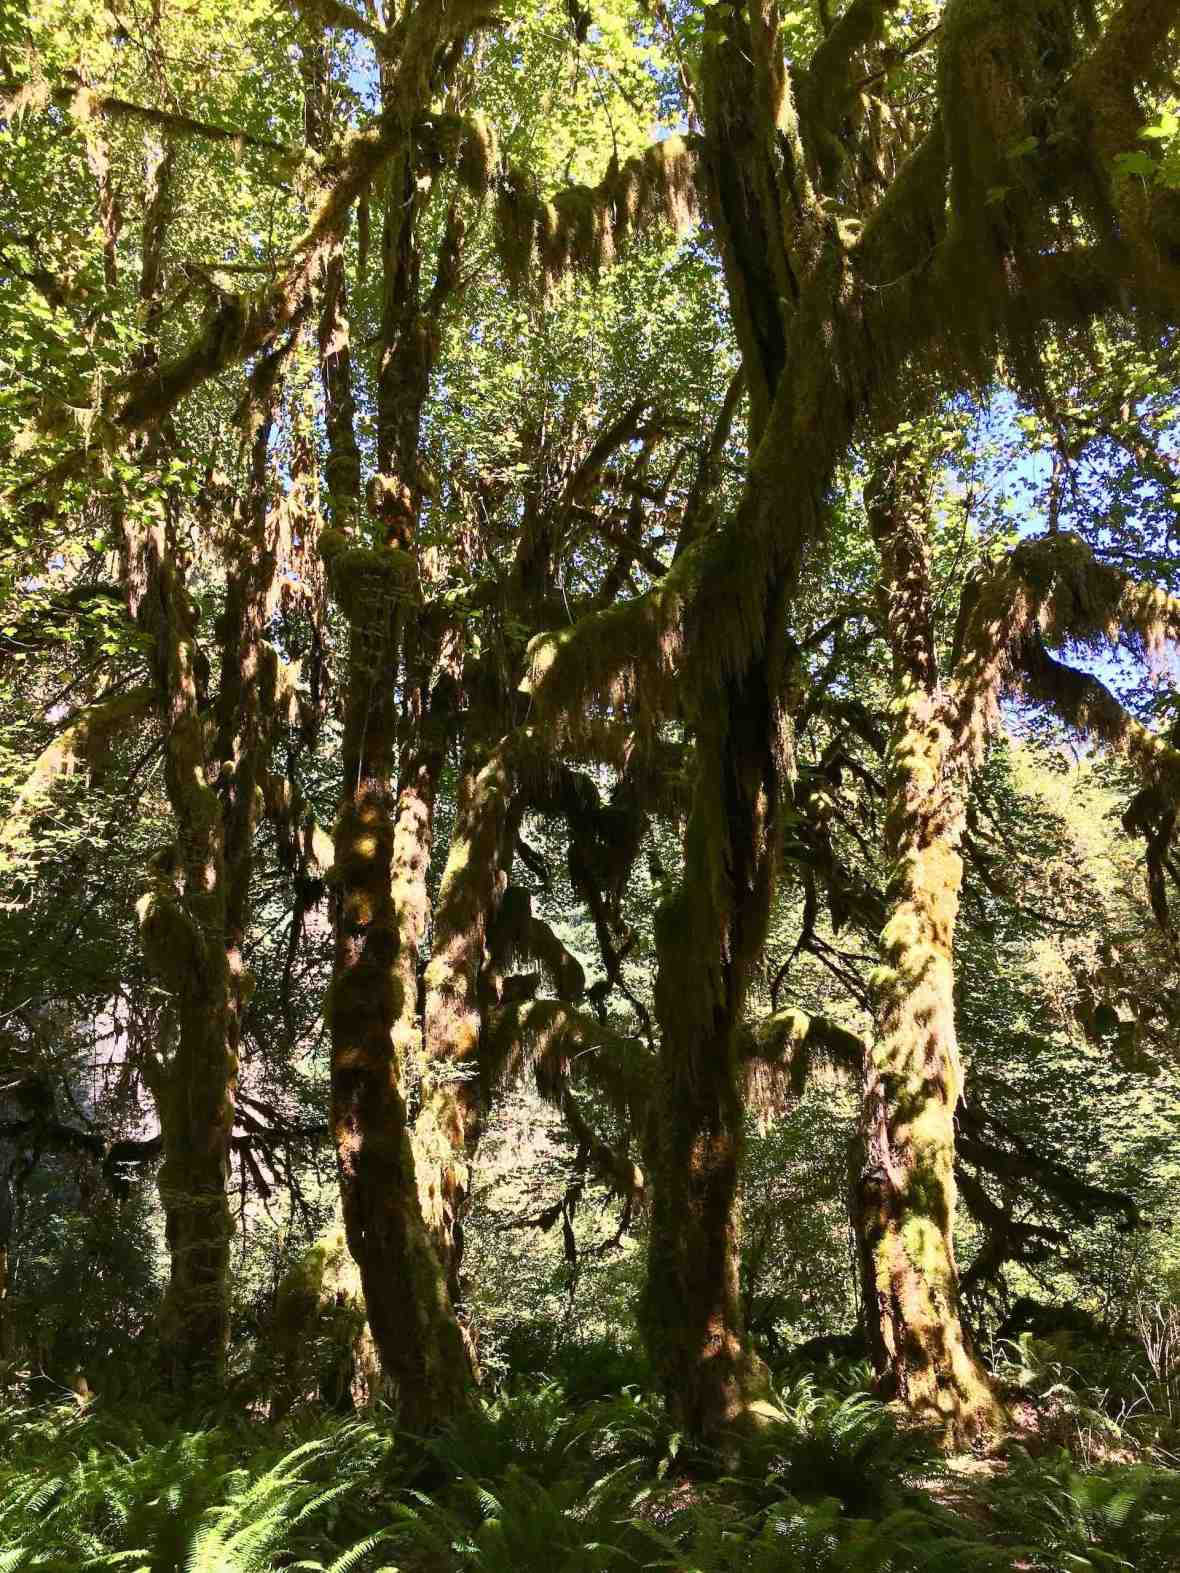 Moss-draped trees in Hoh rainforest at the end of dry season Olympic national park